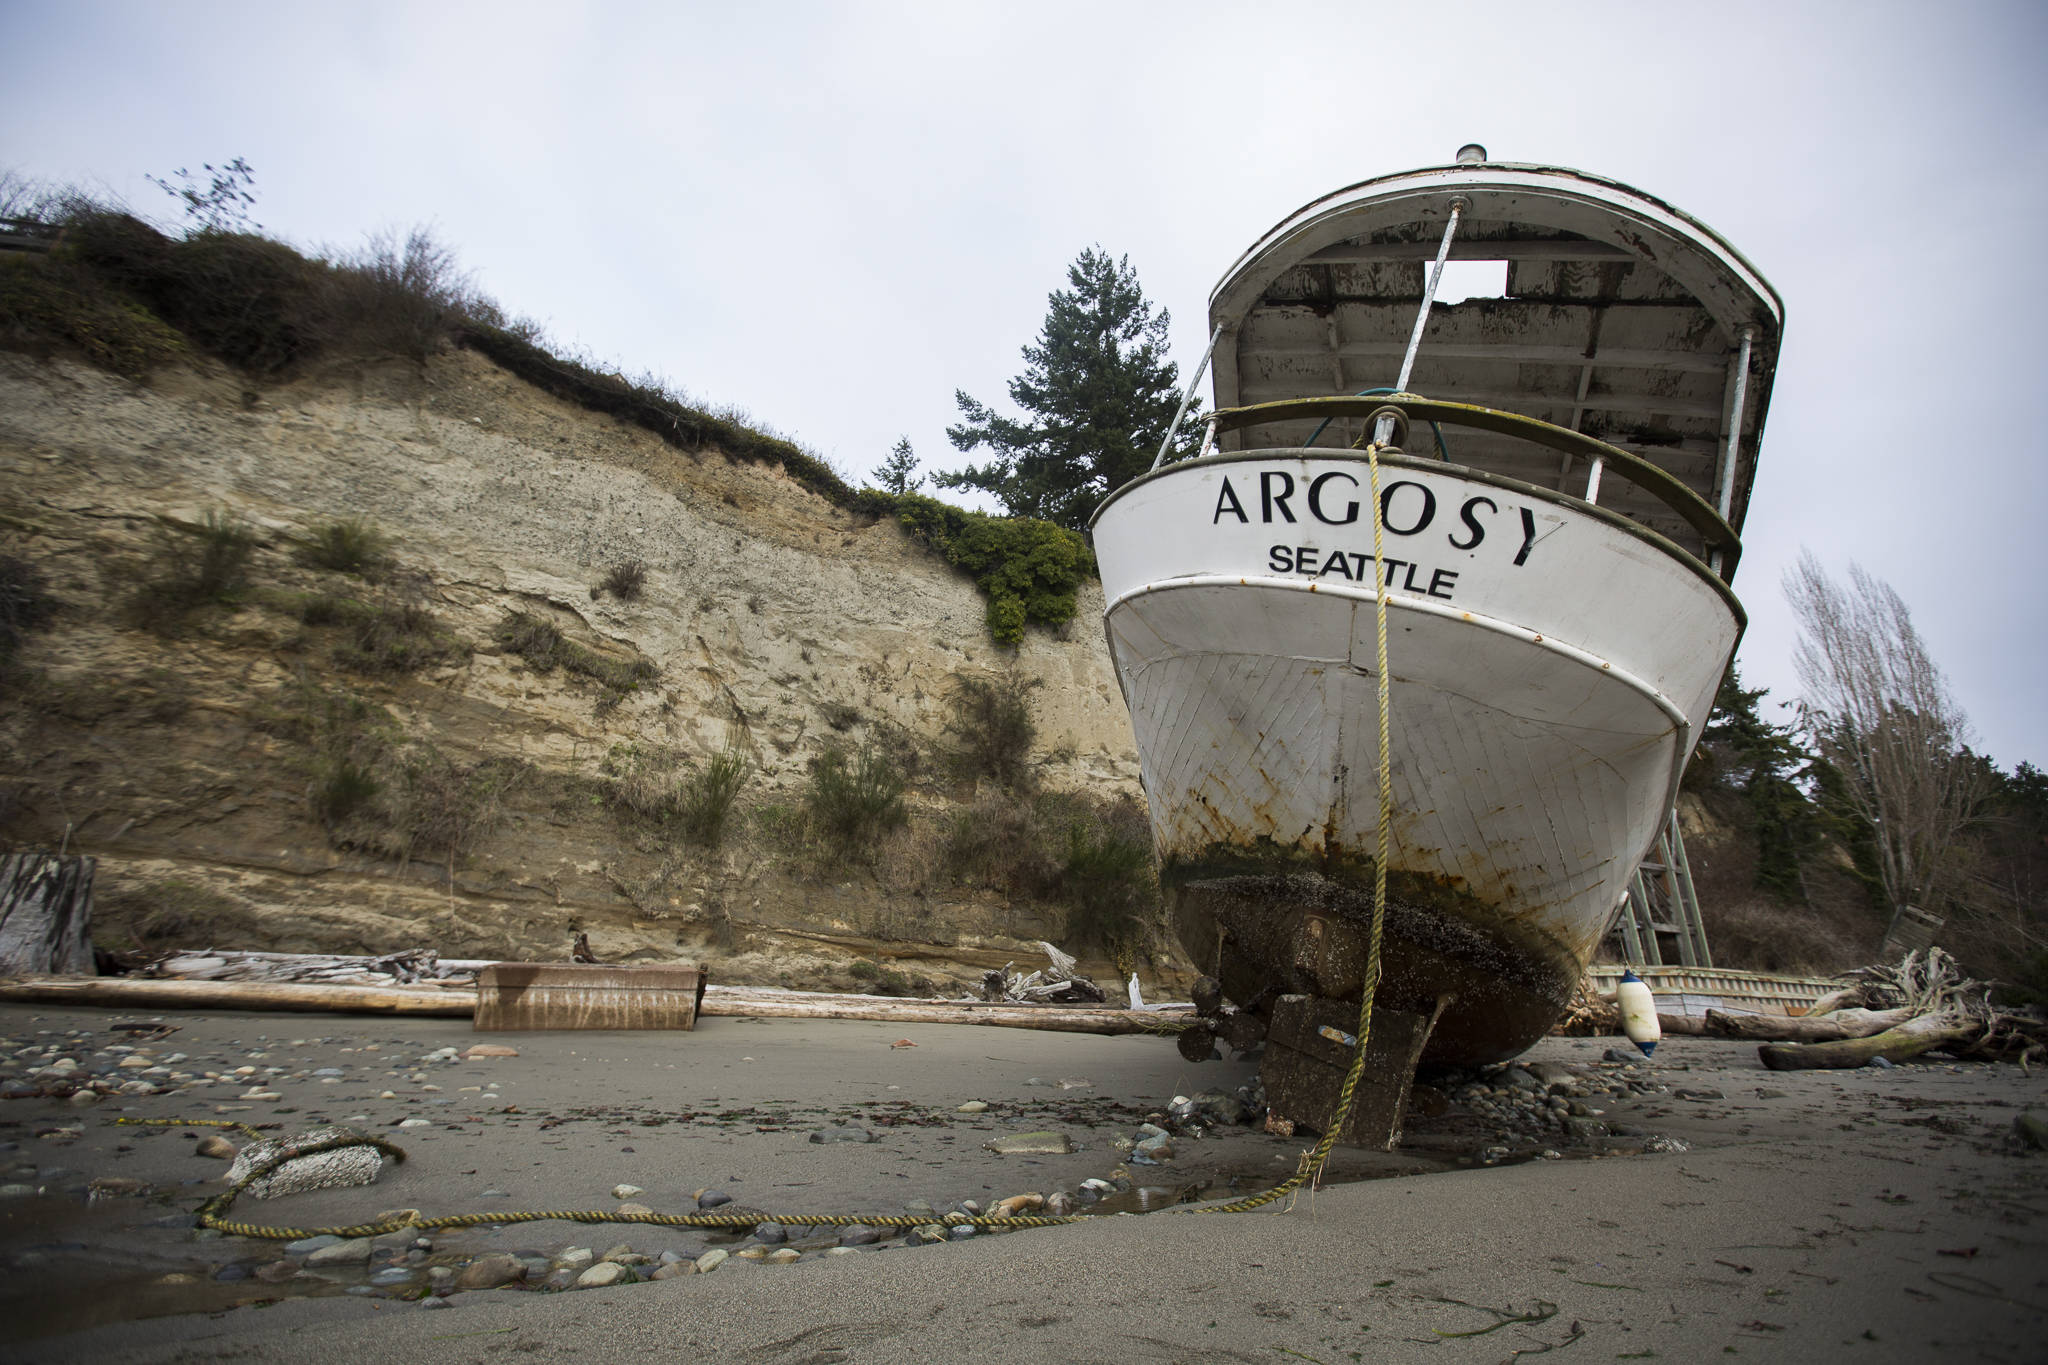 A loose rope hangs from the stern of the Argosy on Friday in Tulalip. (Olivia Vanni / The Herald)